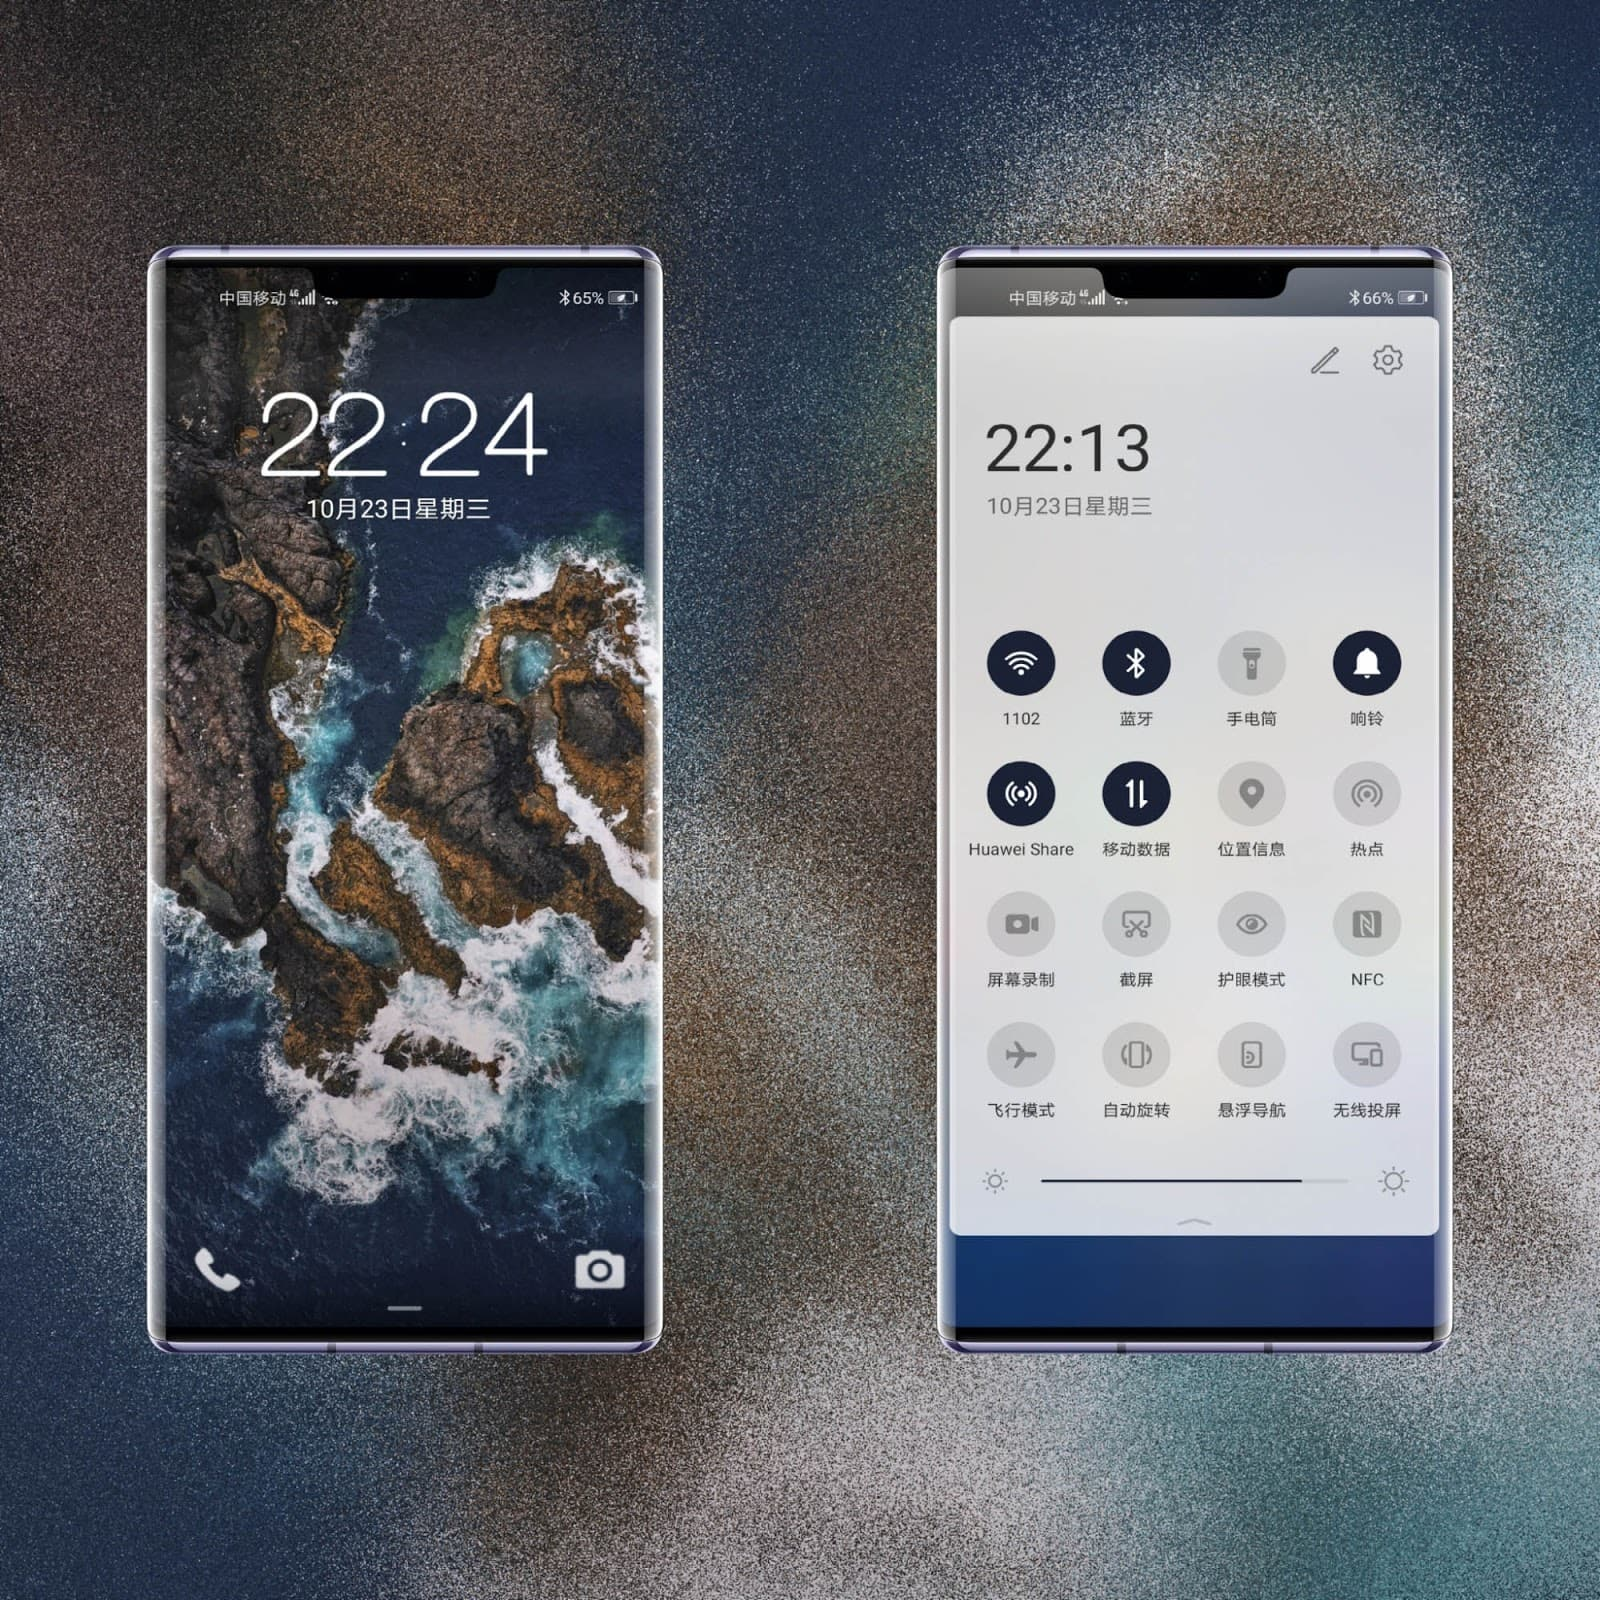 Xperia EMUI Theme Screens 2